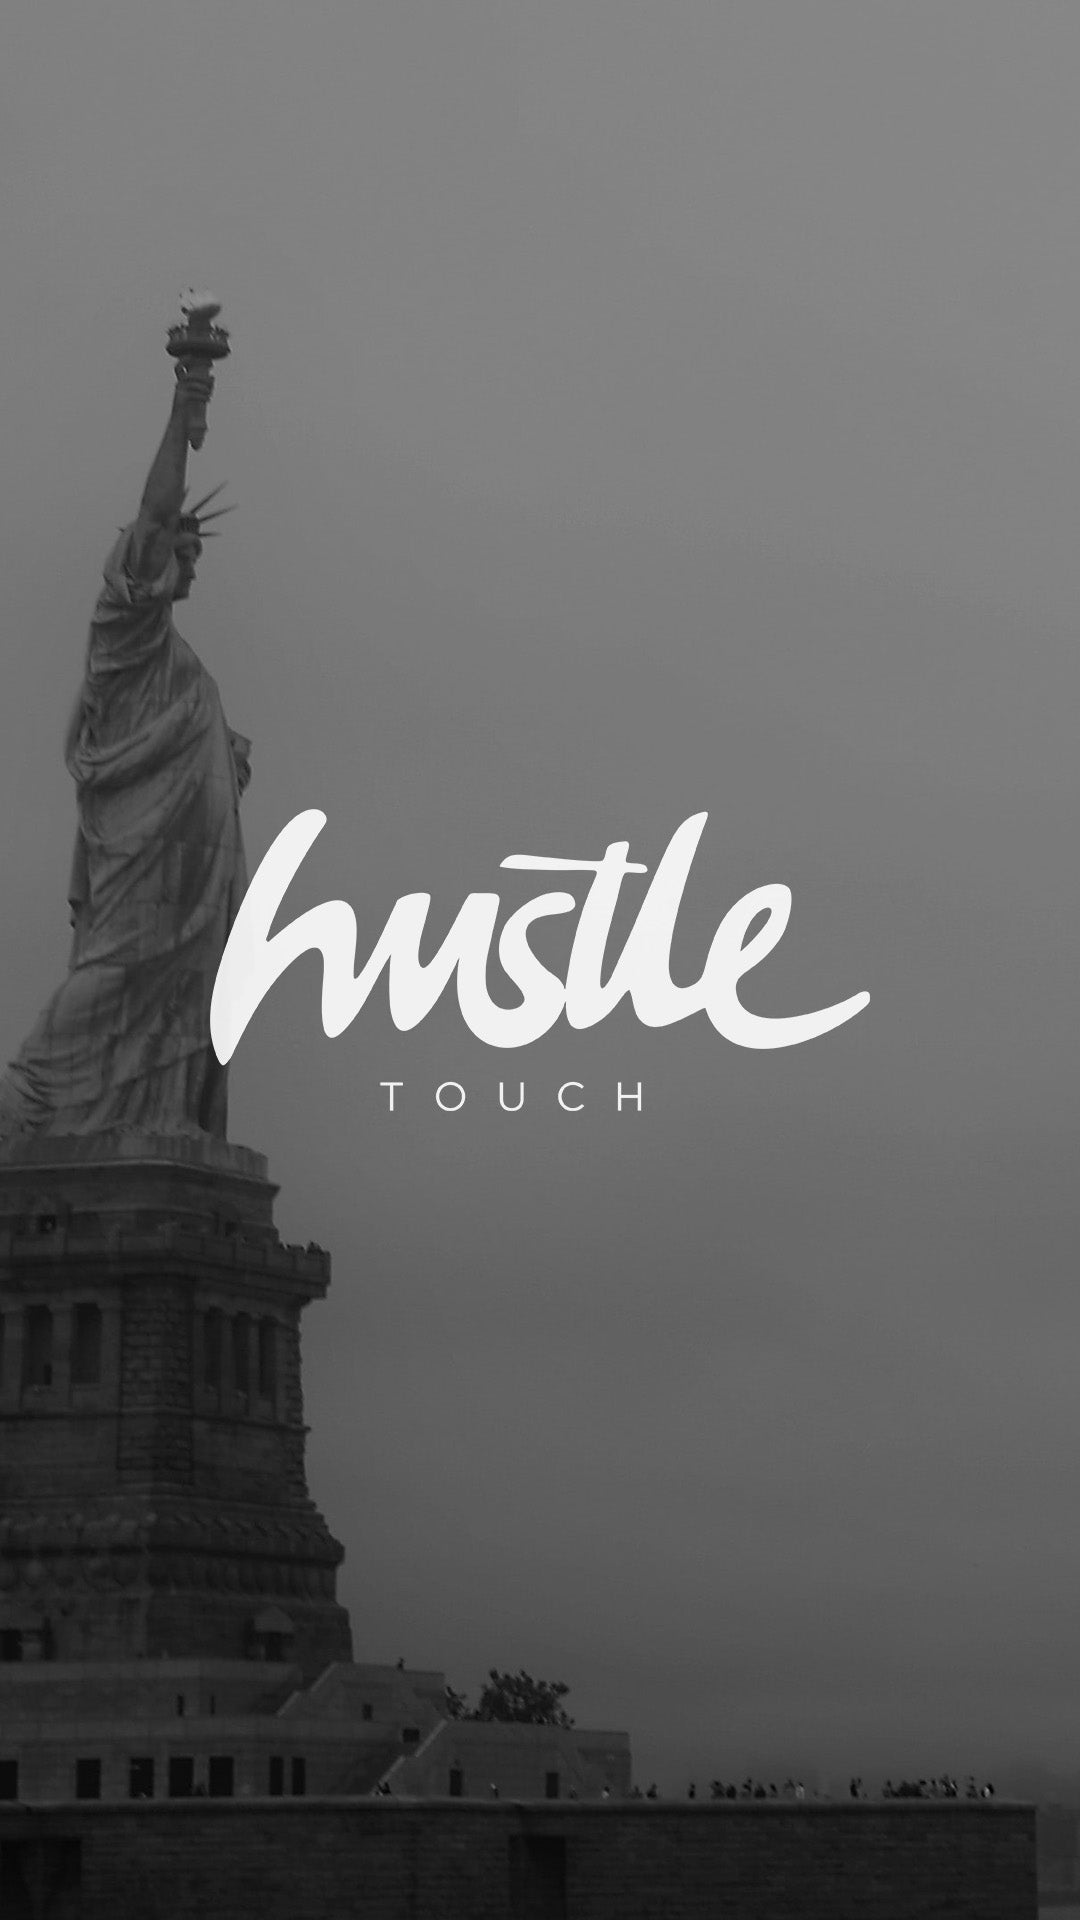 Phone Hustle Touch Wallpaper 009